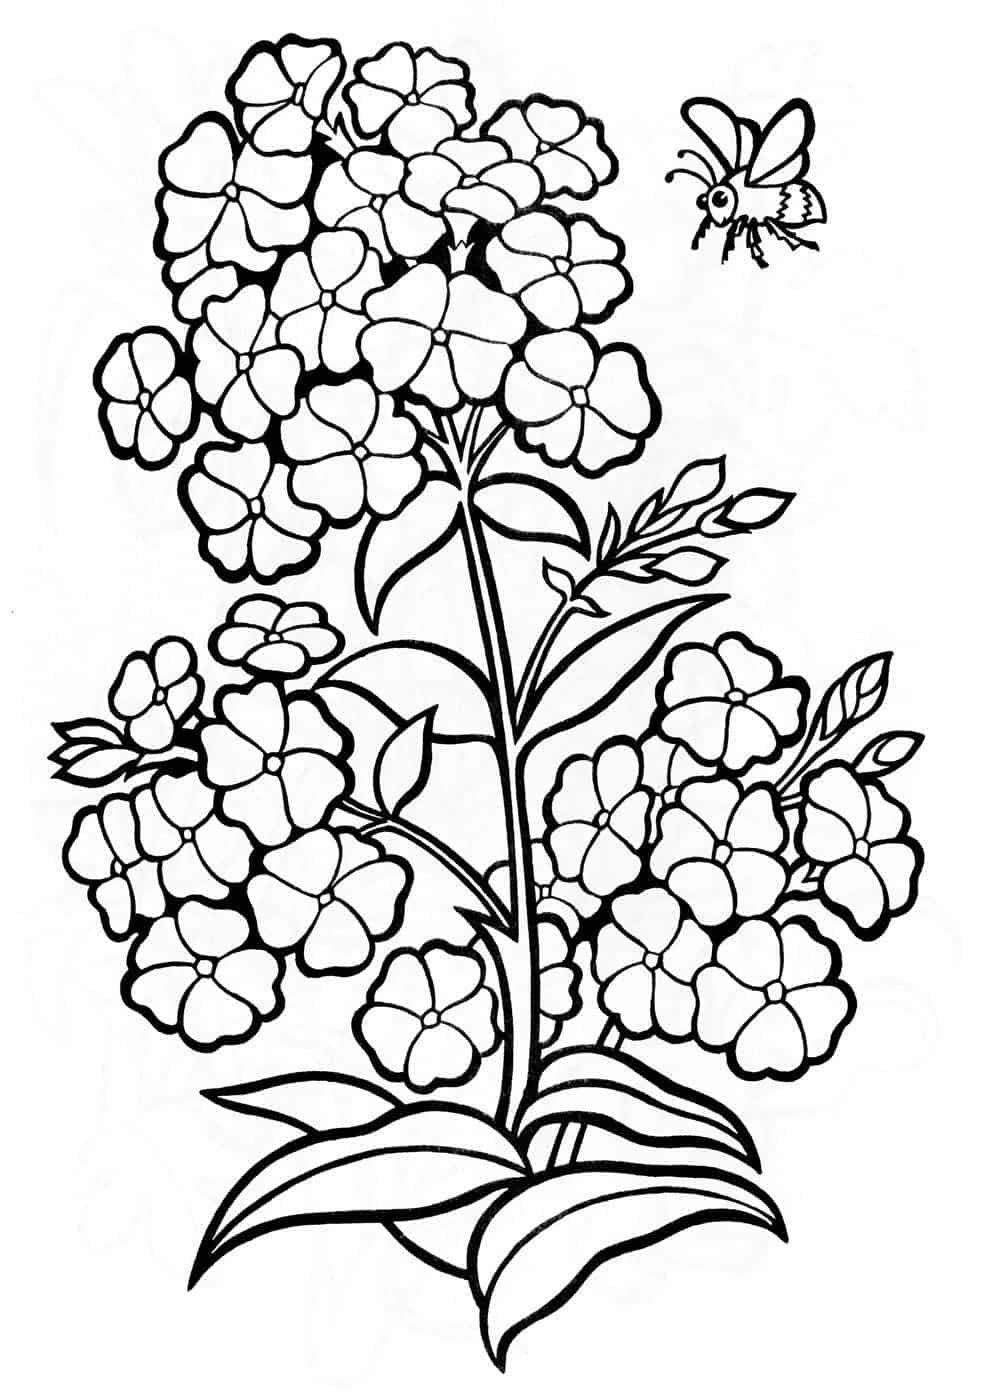 Tropical Flower Coloring Pages Flower Coloring Pages Tropical